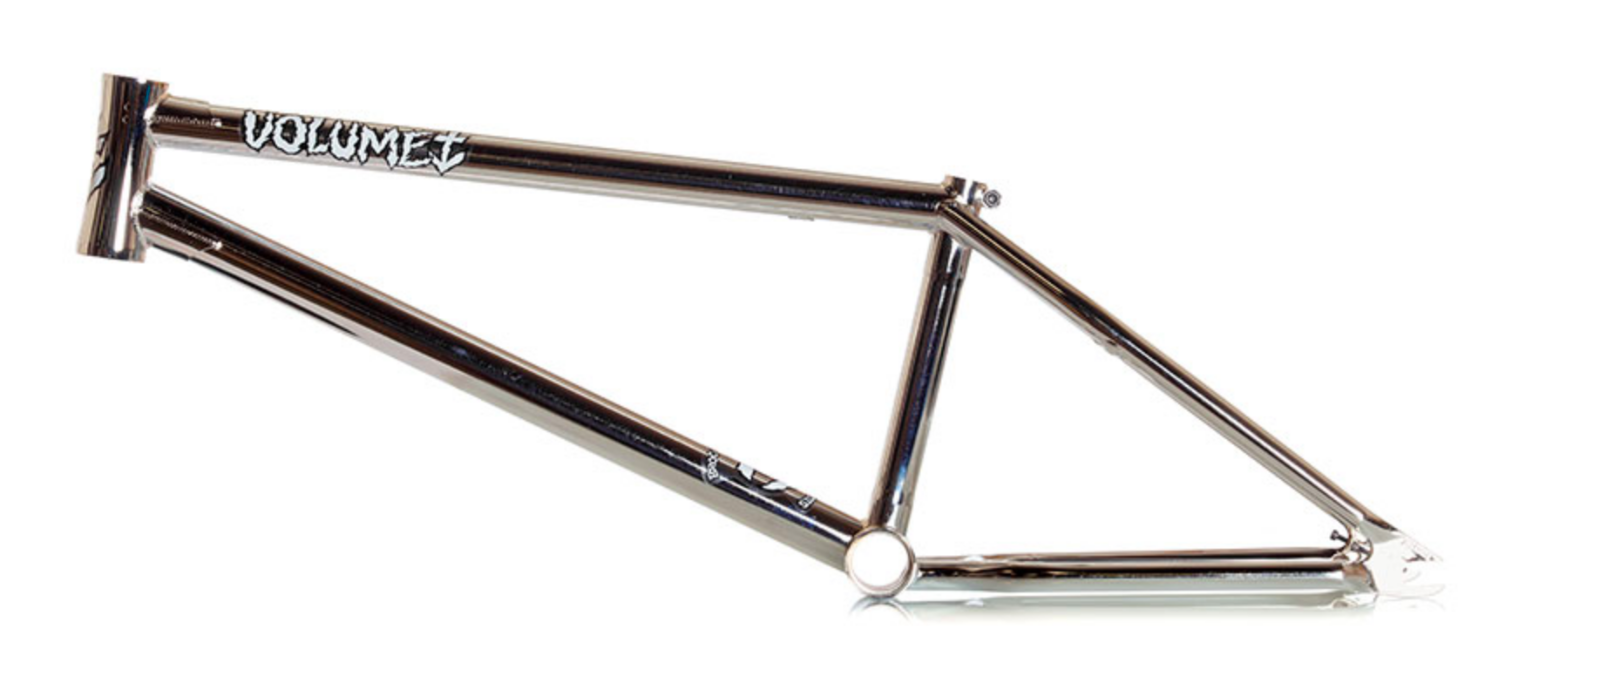 VOLUME BIKES VESSEL BMX FRAME 21.25 CHROME BROC RAIFORD BIKE 21.25 S&M FIT